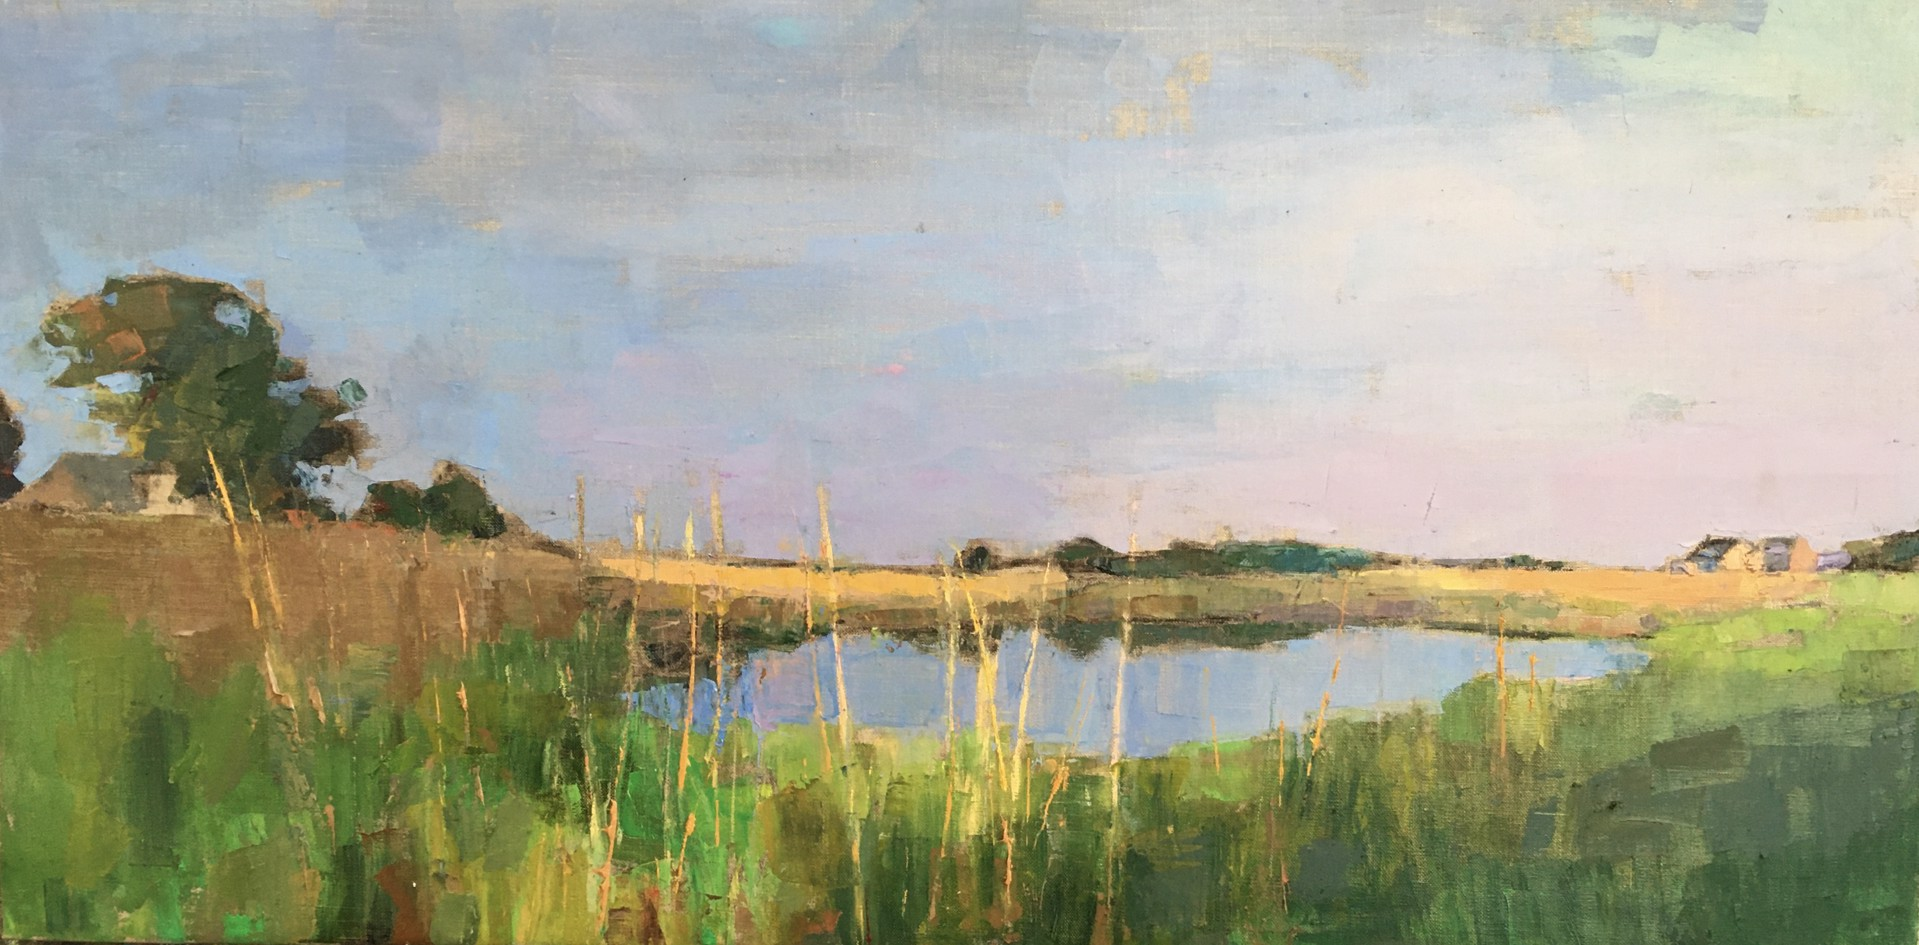 Beach Cottages, Marsh Grasses by Larry Horowitz